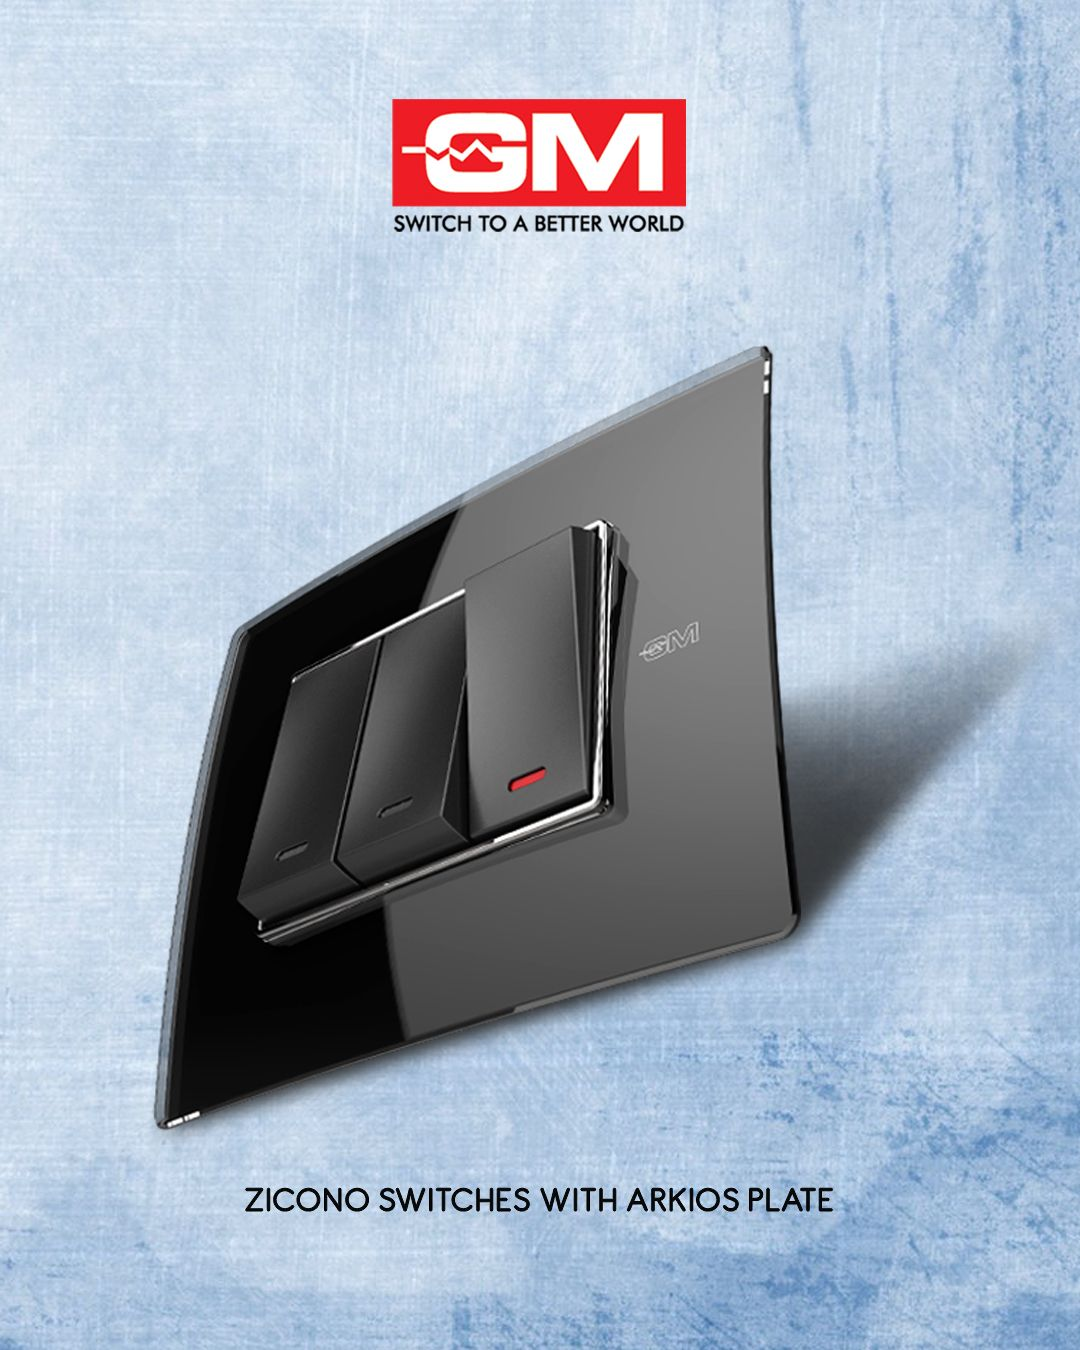 The Zicono Switches Are A Perfect Example Of Yet Another Innovation By Gm Modular Designed With An Upgra Switches Home Automation Light Switches And Sockets